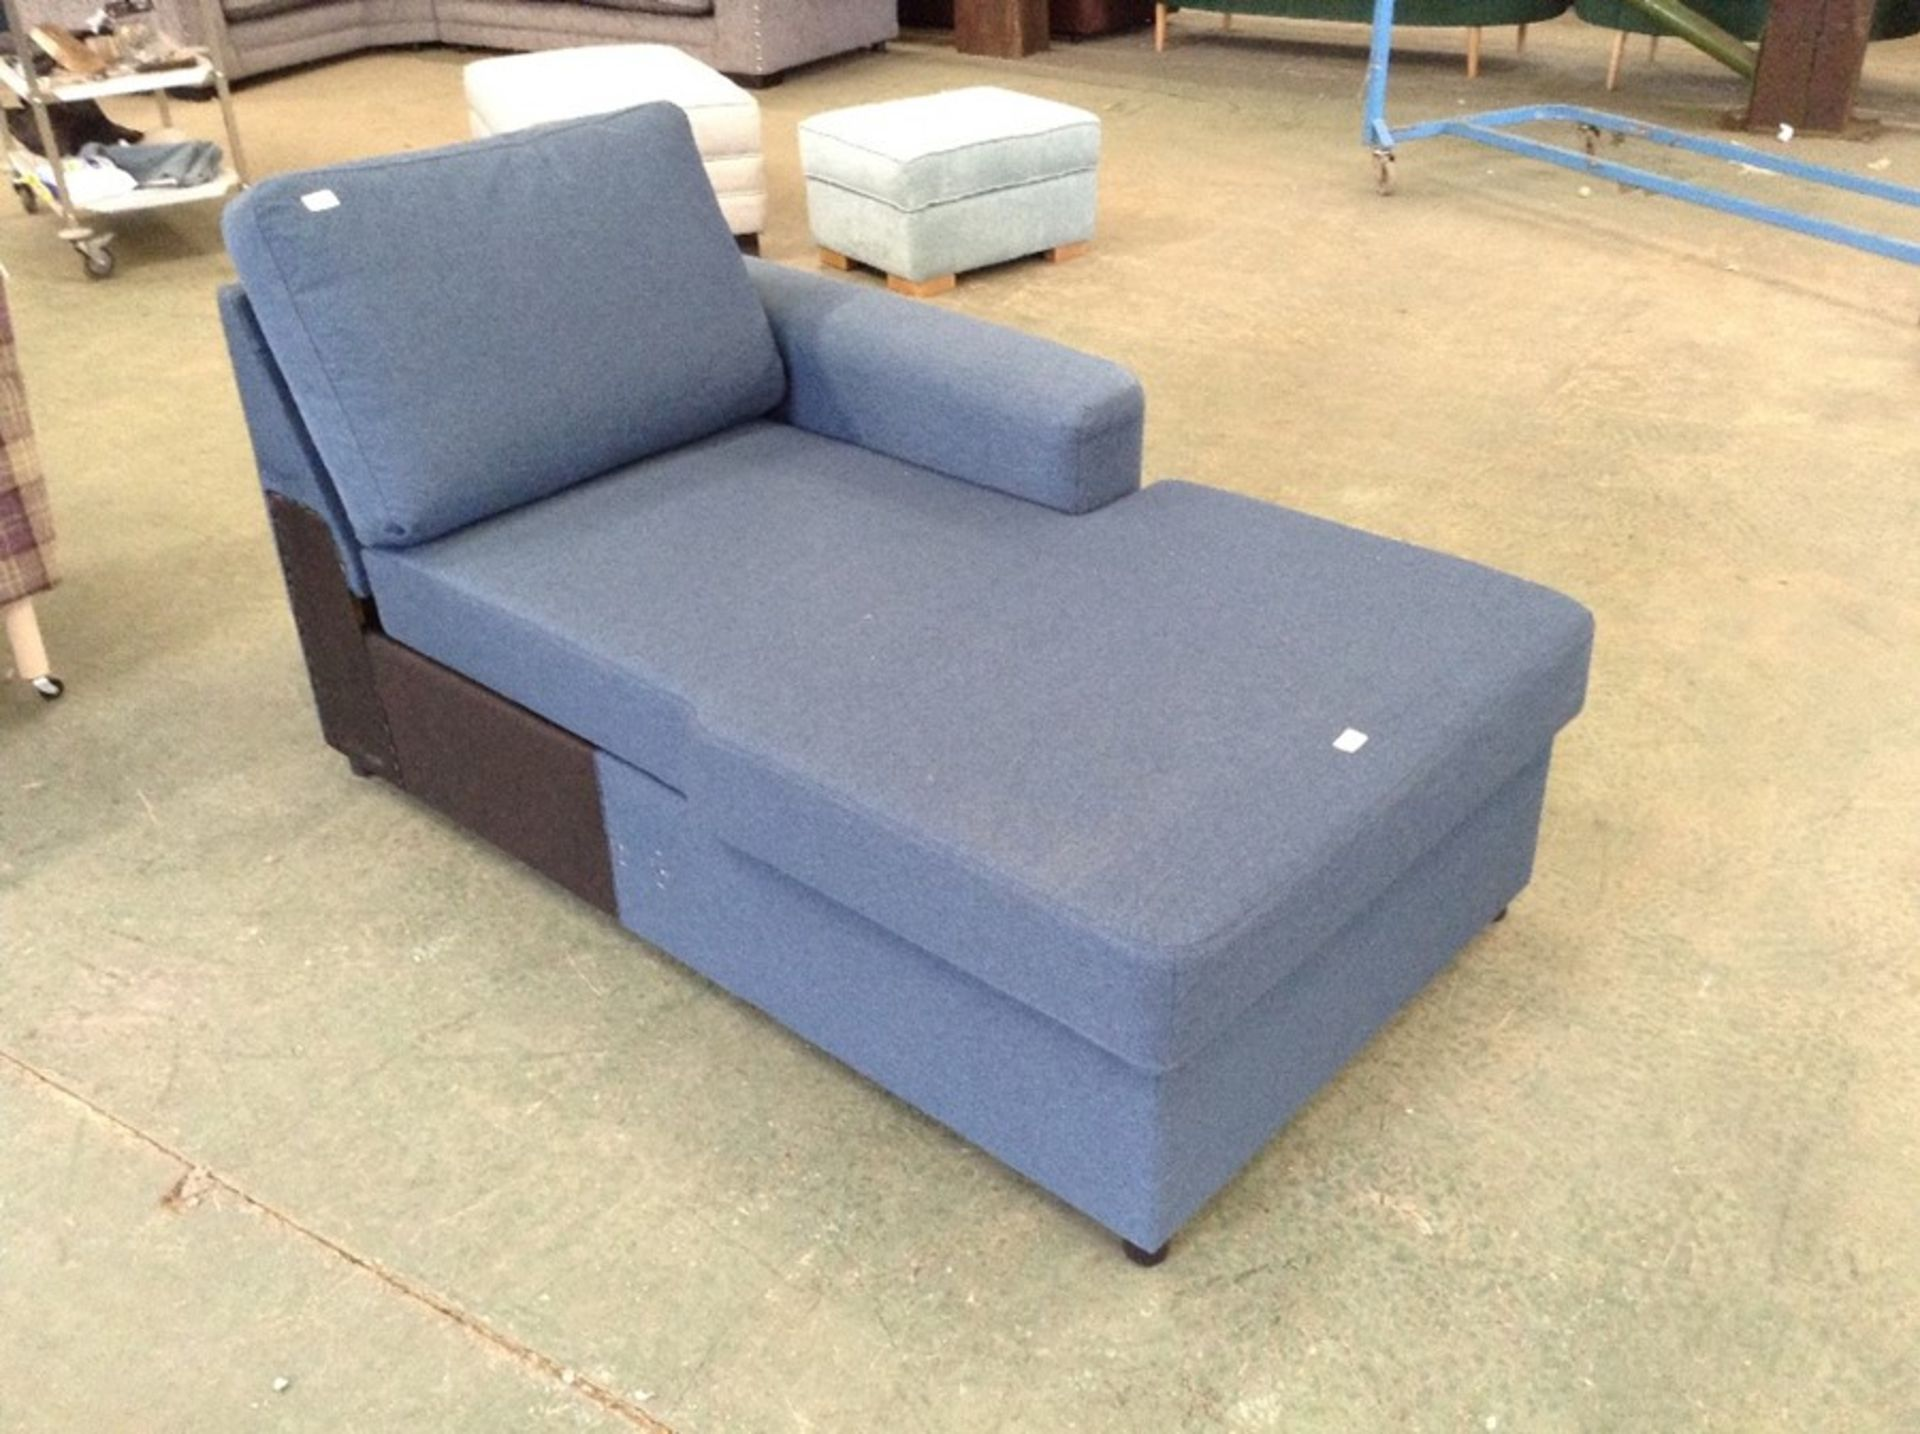 | 1x | Made.com Aidian Large Corner Sofa Bed with